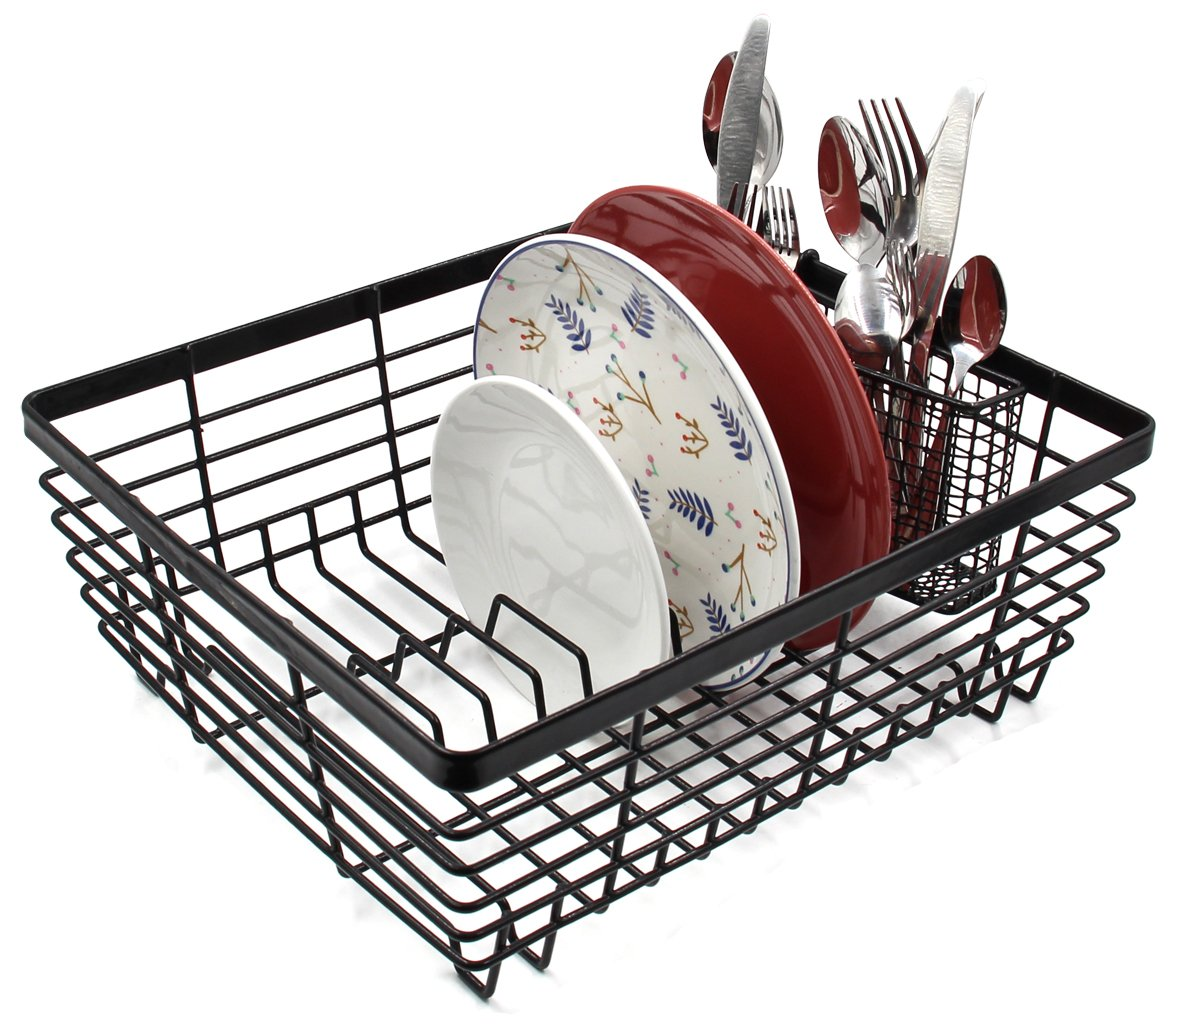 ESYLIFE Kitchen Dish Drainer Drying Rack with Full-Mesh Silverware Storage Basket, Black by Esy-Life